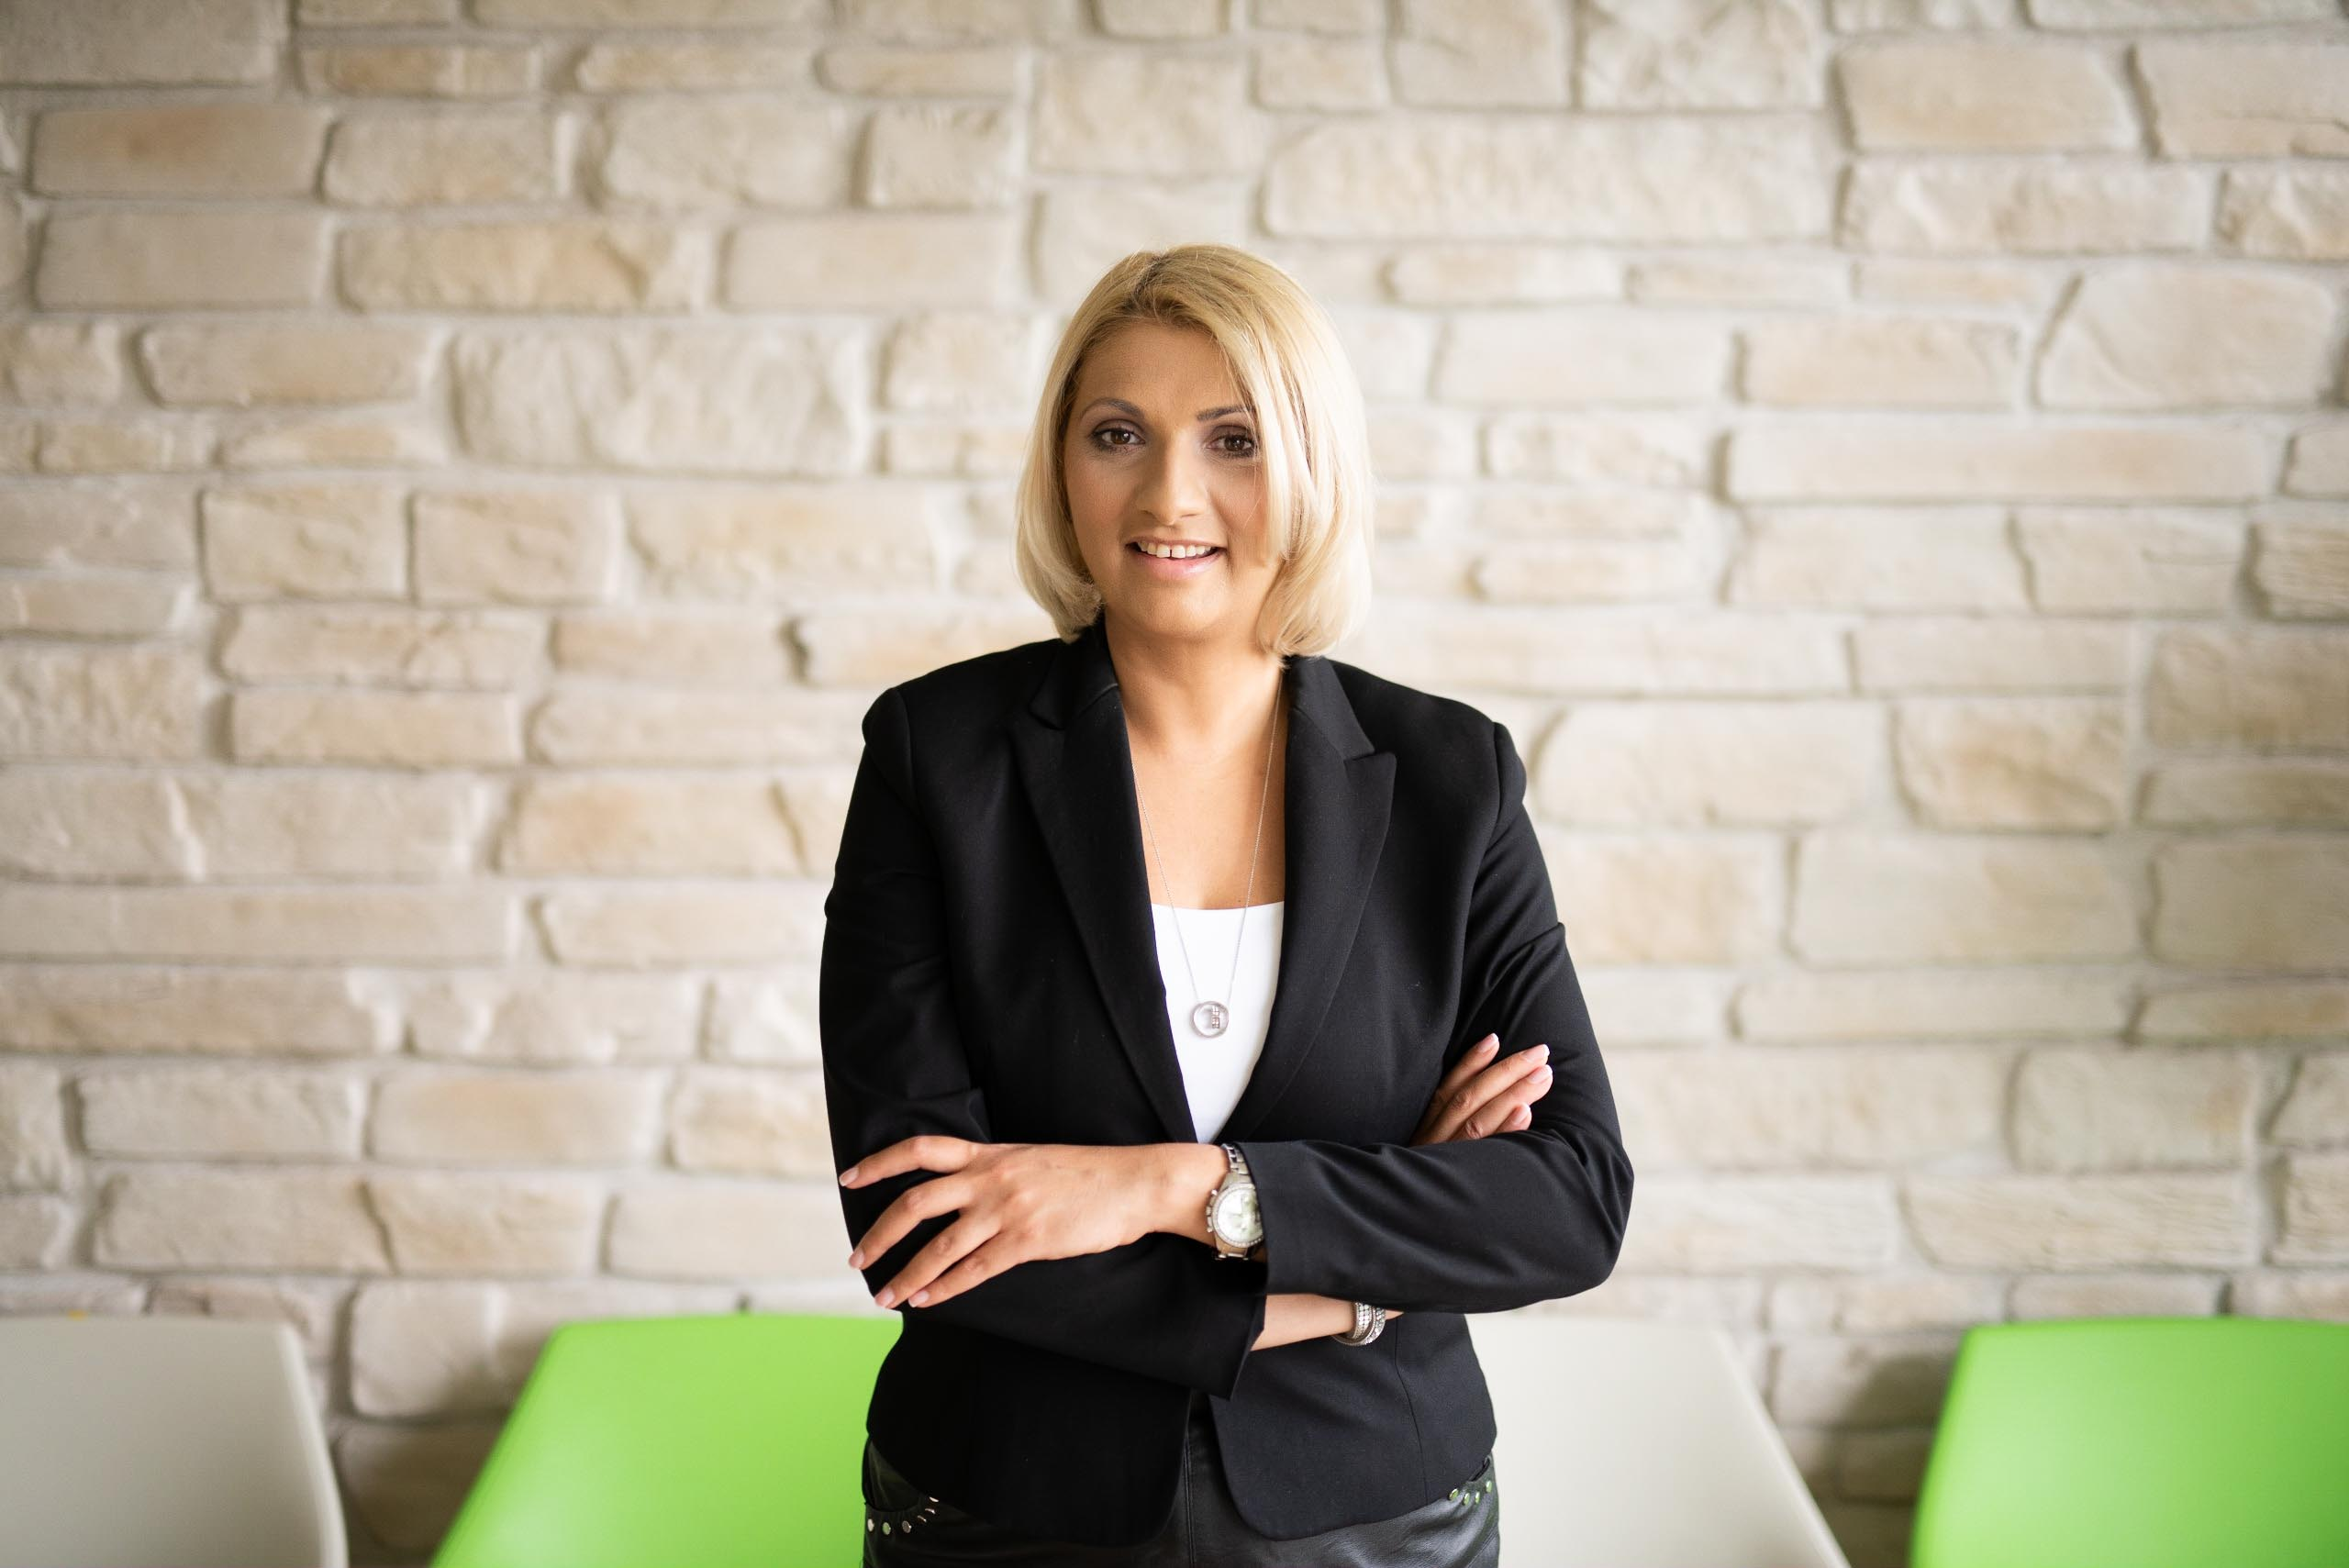 Melita Manojlović, life and business coach